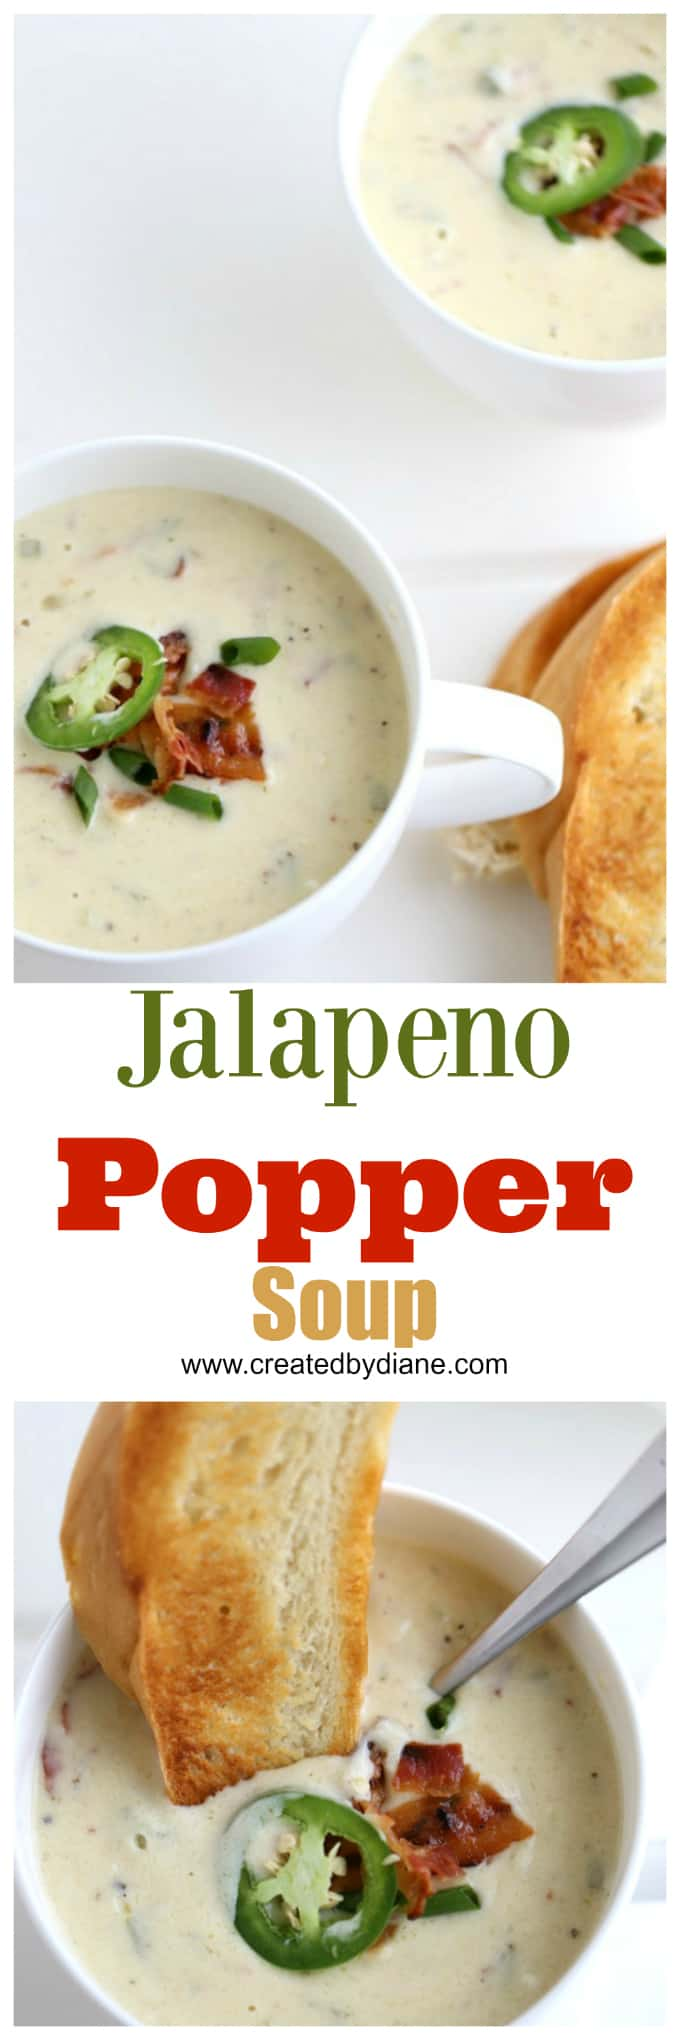 jalapeno popper soup, white bowl of thick creamy beer cheese soup with bacon and jalapenos and a slice of bread www.createdbydiane.com